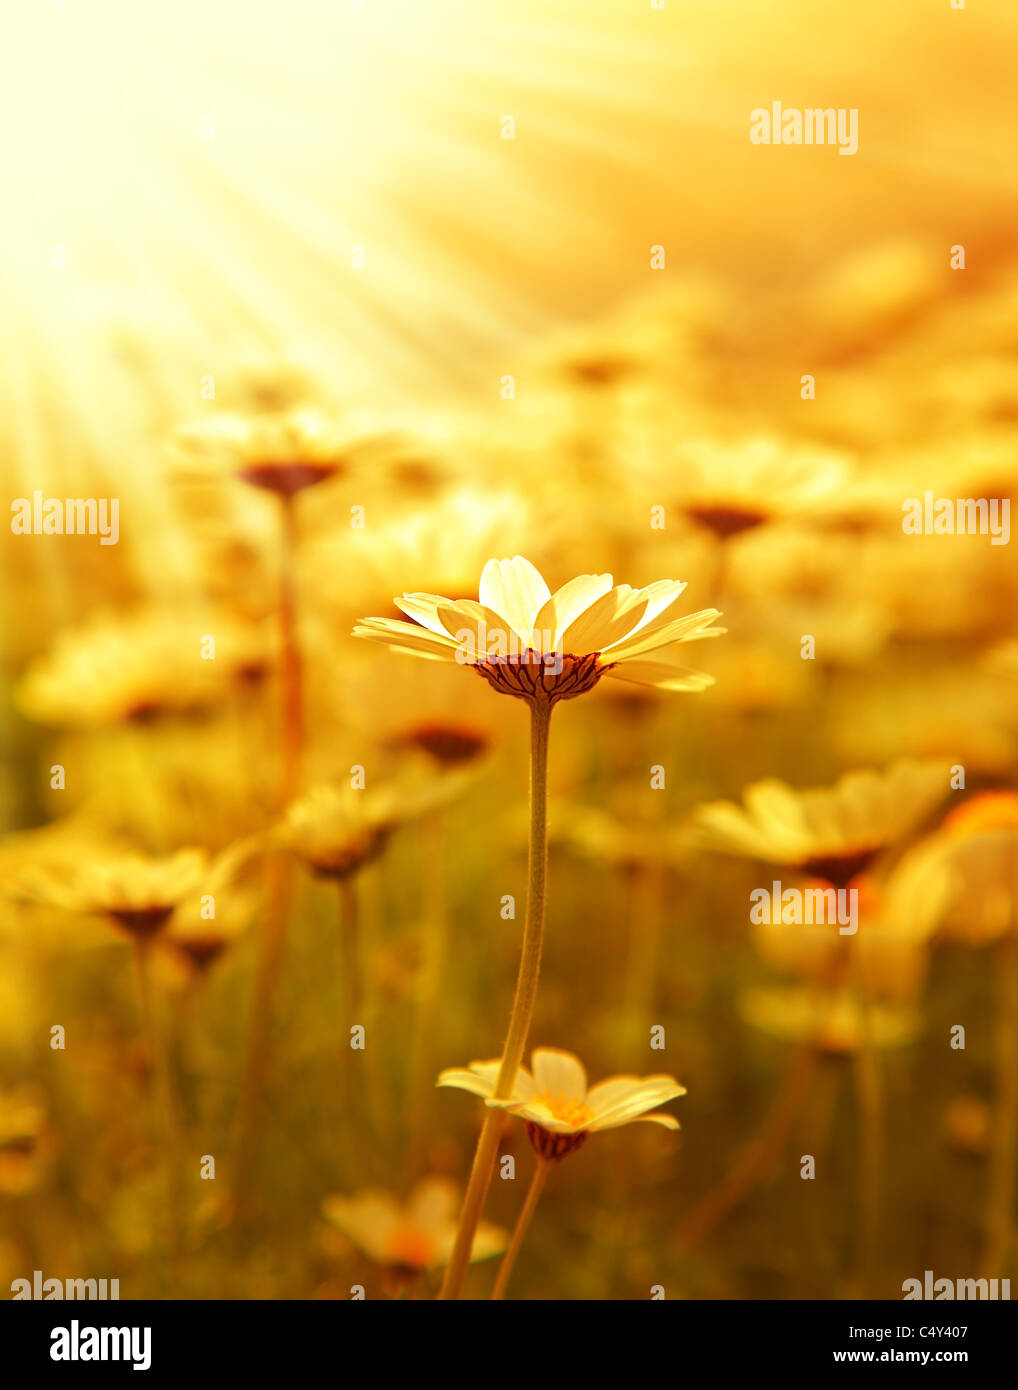 Fresh daisy flower field background at sunny spring day, sunset macro outdoor scene - Stock Image